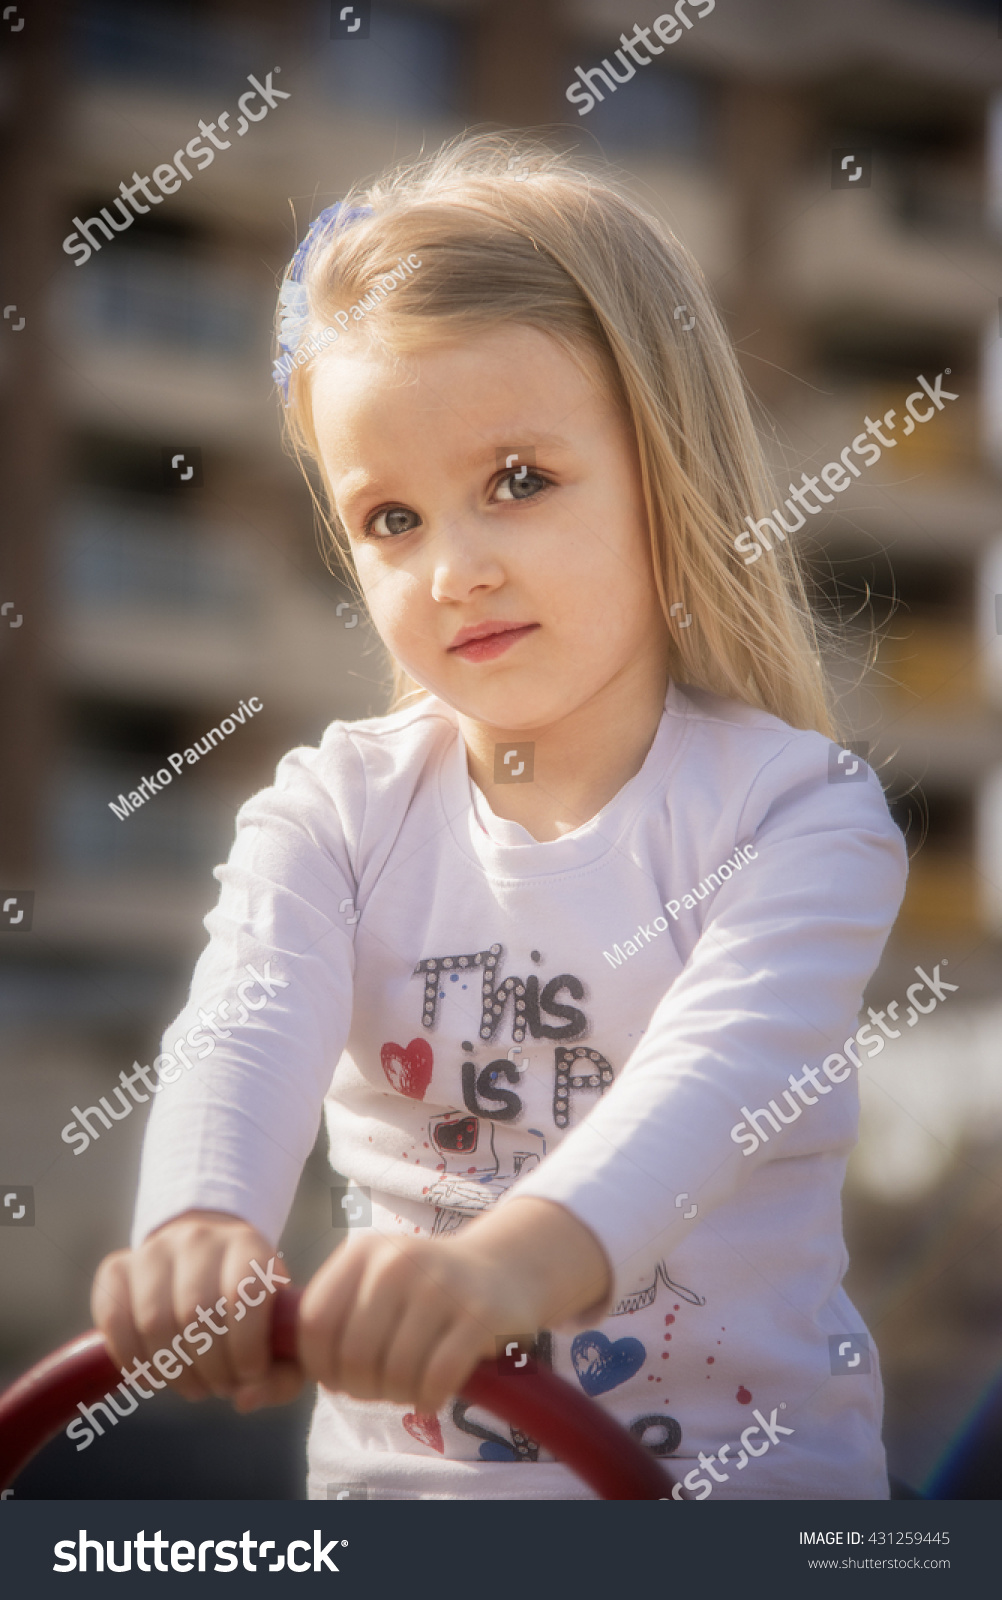 Adorable Four Year Boy With Big Blue Eyes Stock Image: Cute Little 4 Years Old Blonde Stock Photo 431259445